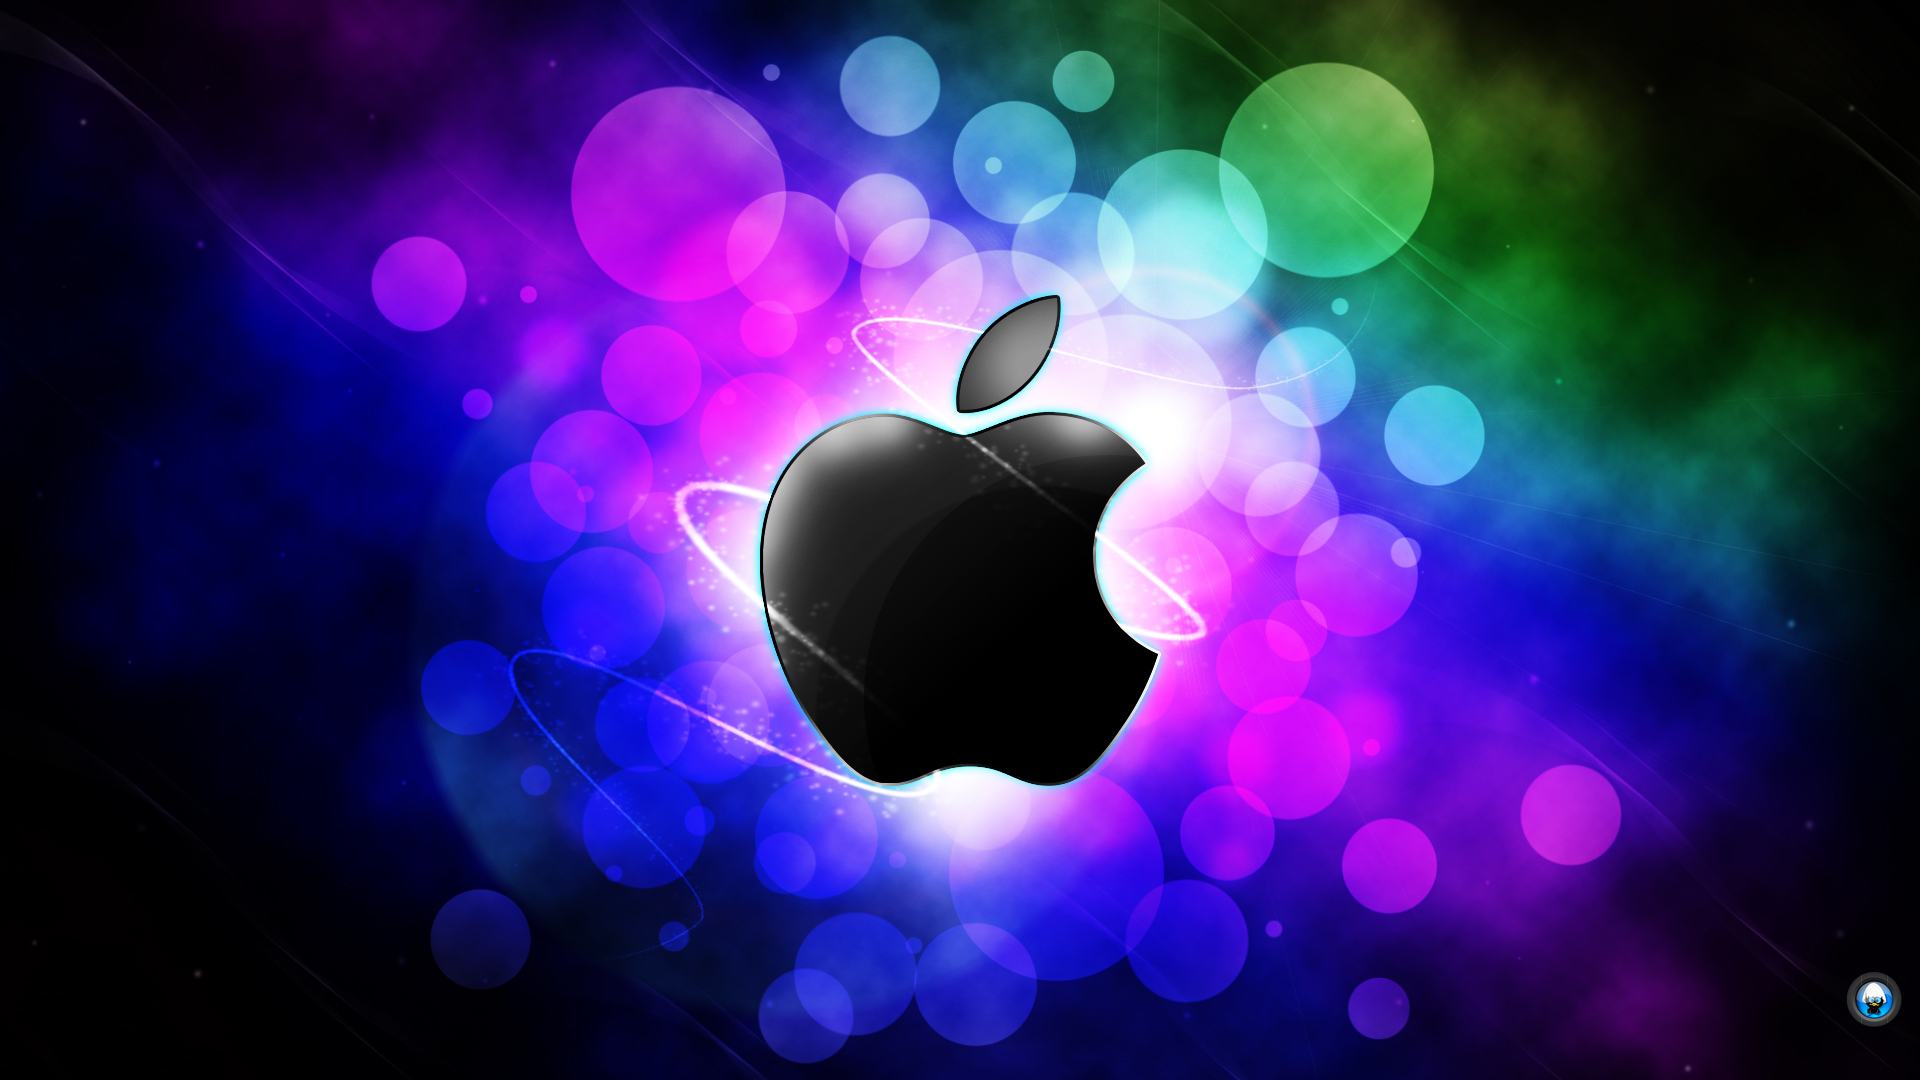 Cool Apple Logo Wallpaper Page 1